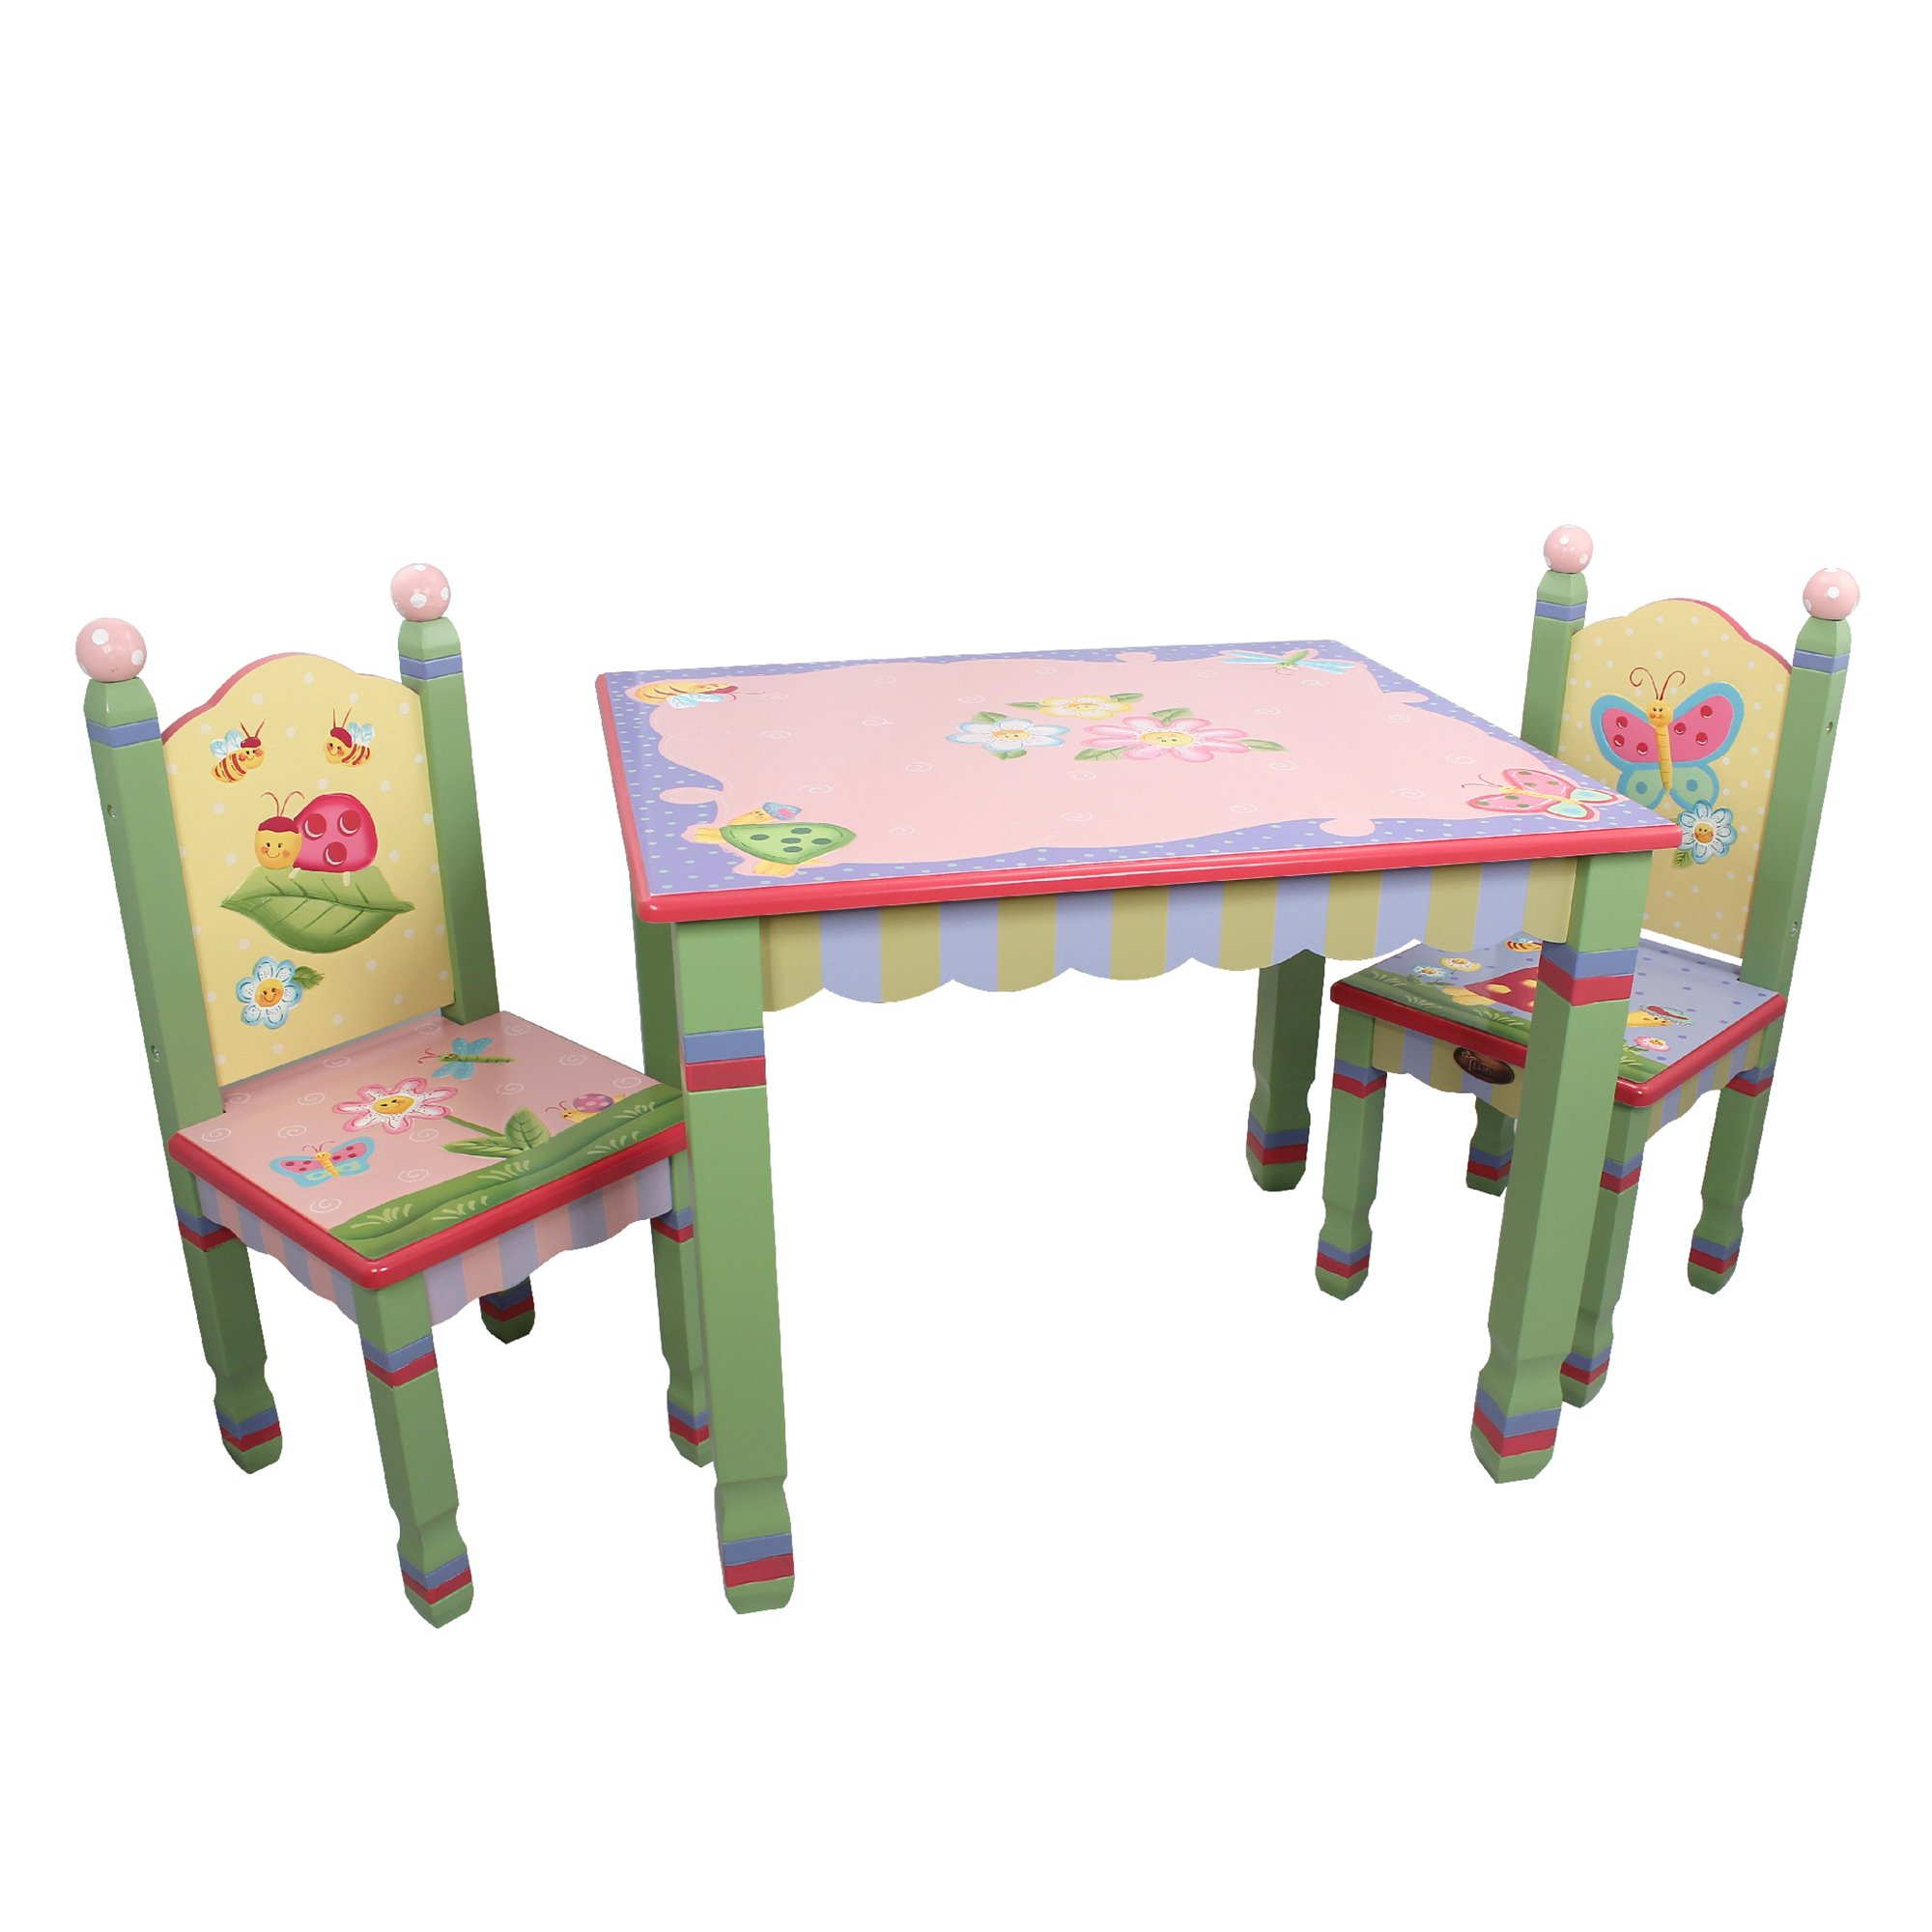 Fantasy Fields - Magic Garden Thematic Hand Crafted Kids Wooden Table and 2 Chairs Set  Imagination Inspiring Hand Crafted & Hand Painted Details   Non-Toxic, Lead Free Water-based Paint